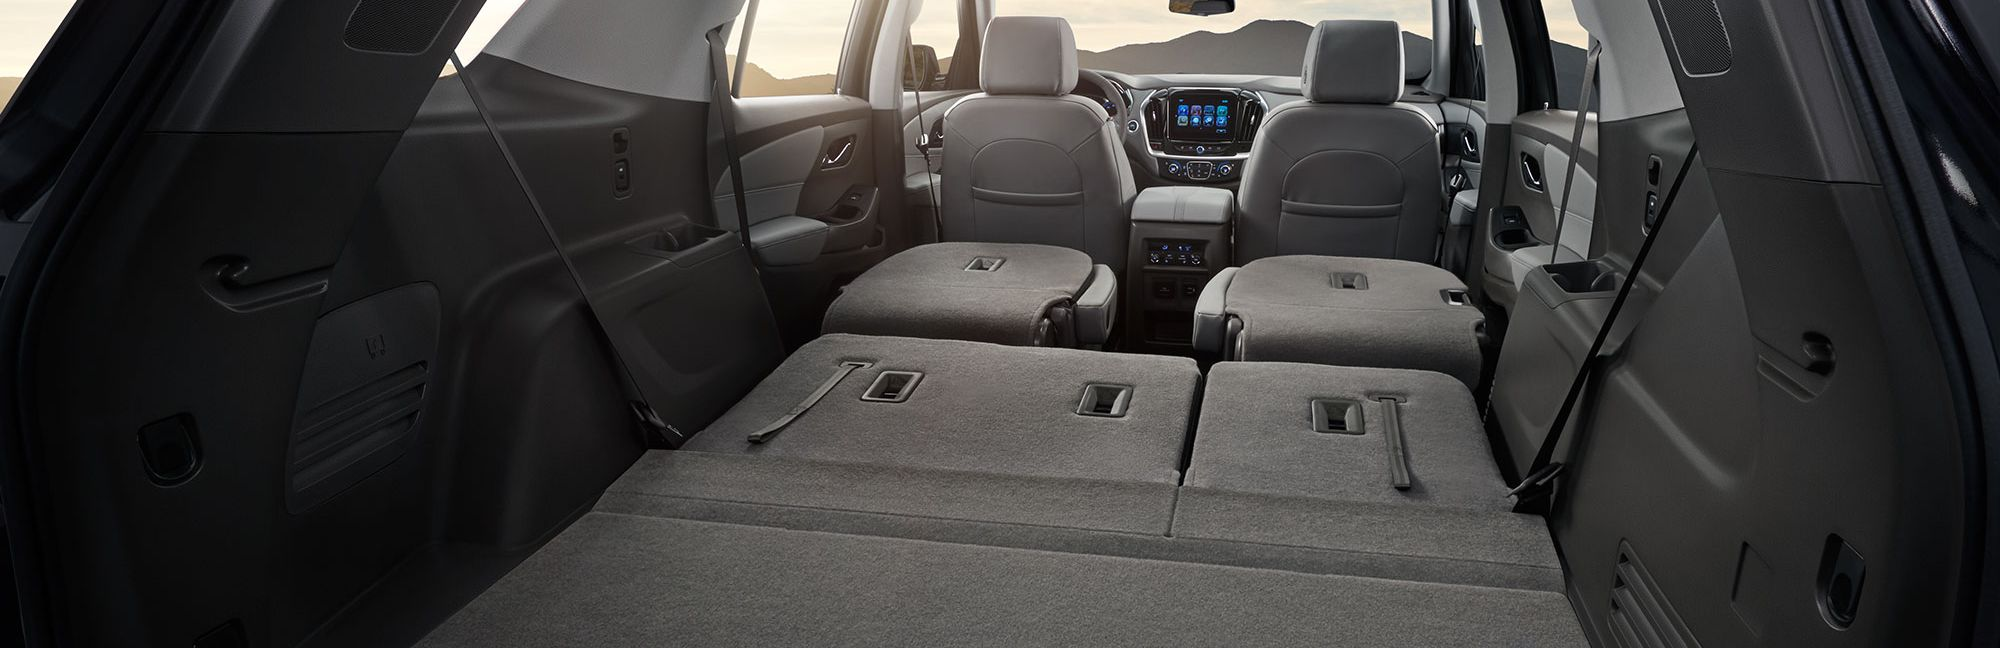 Convenient Storage Space in the 2019 Chevrolet Traverse